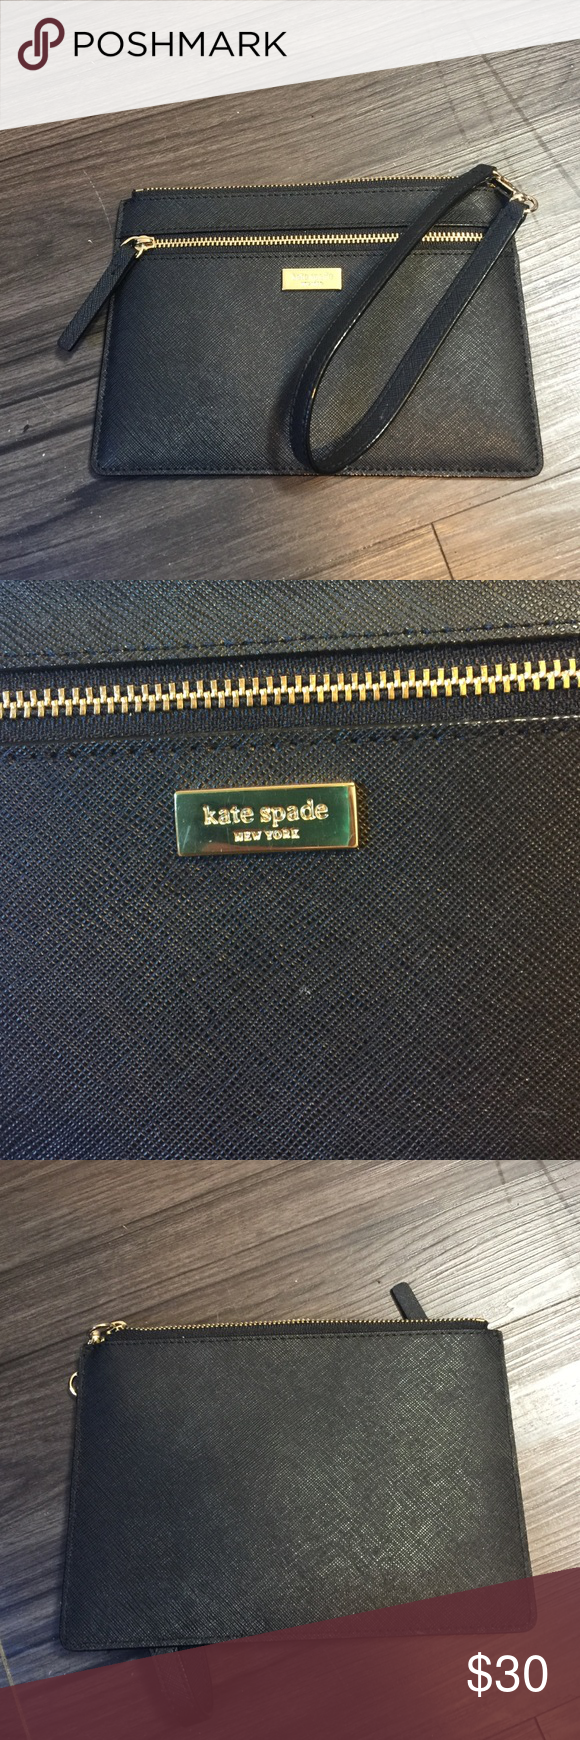 Kate Spade Wristlet Go out in style with this Kate Spade Wristlet. . Inside has slots for IDs and cards. Has been used once. Picture shows marks on gold emblem. No other stains or marks. kate spade Bags Clutches & Wristlets